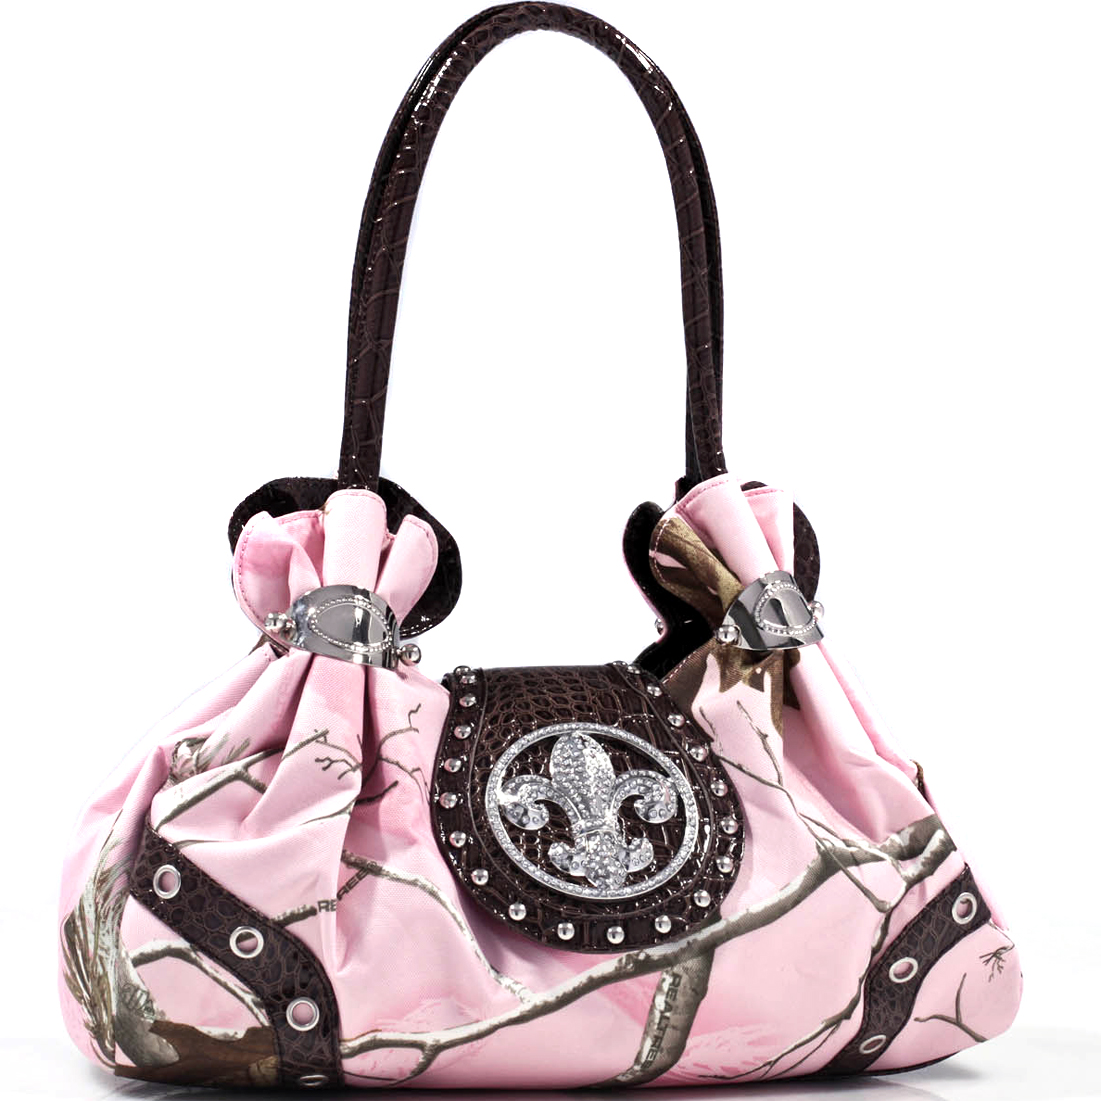 Realtree ® Studded camouflage satchel bag with rhinestone fleur de lis - Pink Camo Coffee Trim